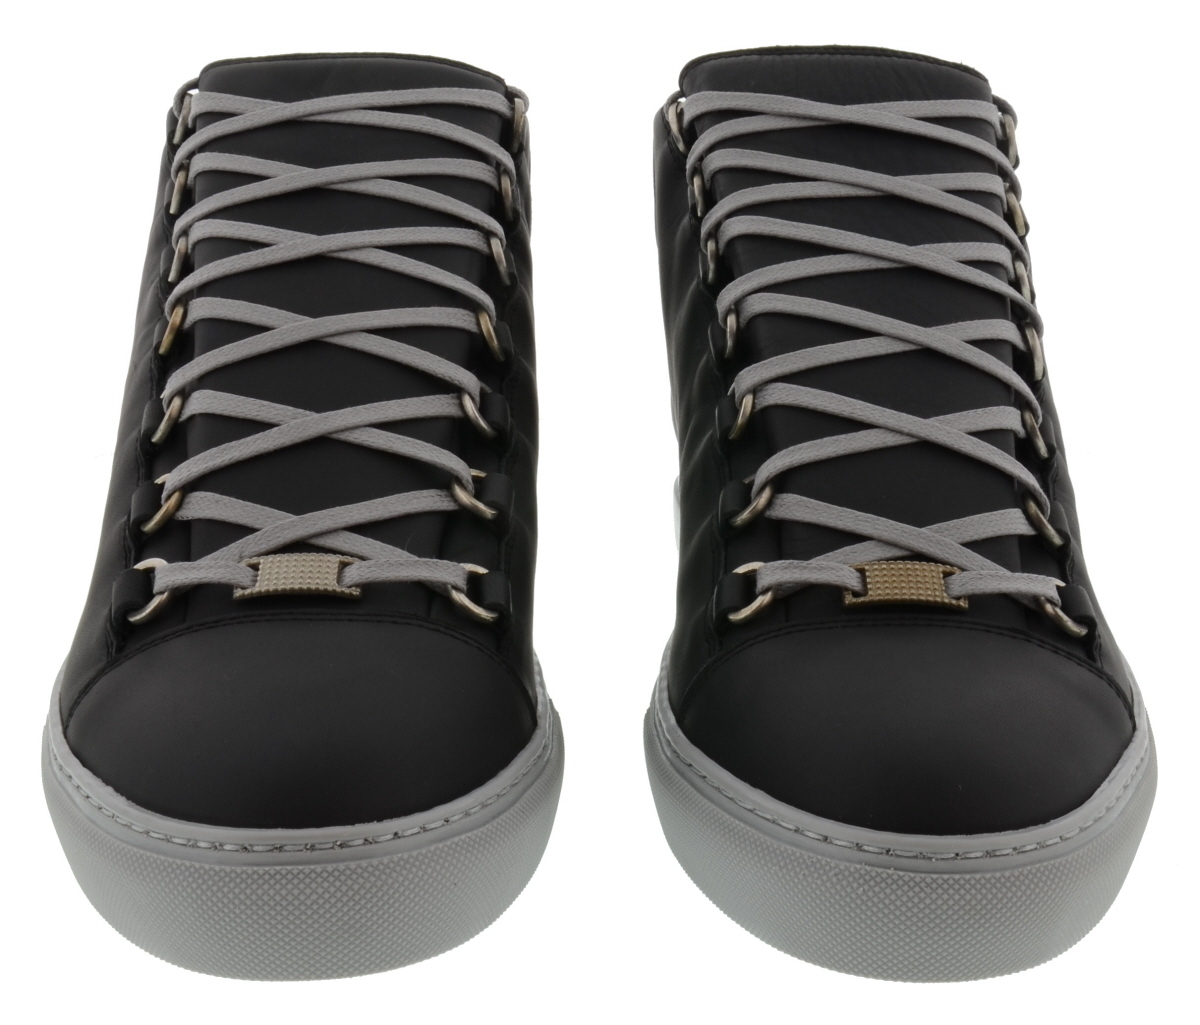 mens balenciaga sneakers for sale 28 images 2015 balenciaga s leather high top sneakers. Black Bedroom Furniture Sets. Home Design Ideas